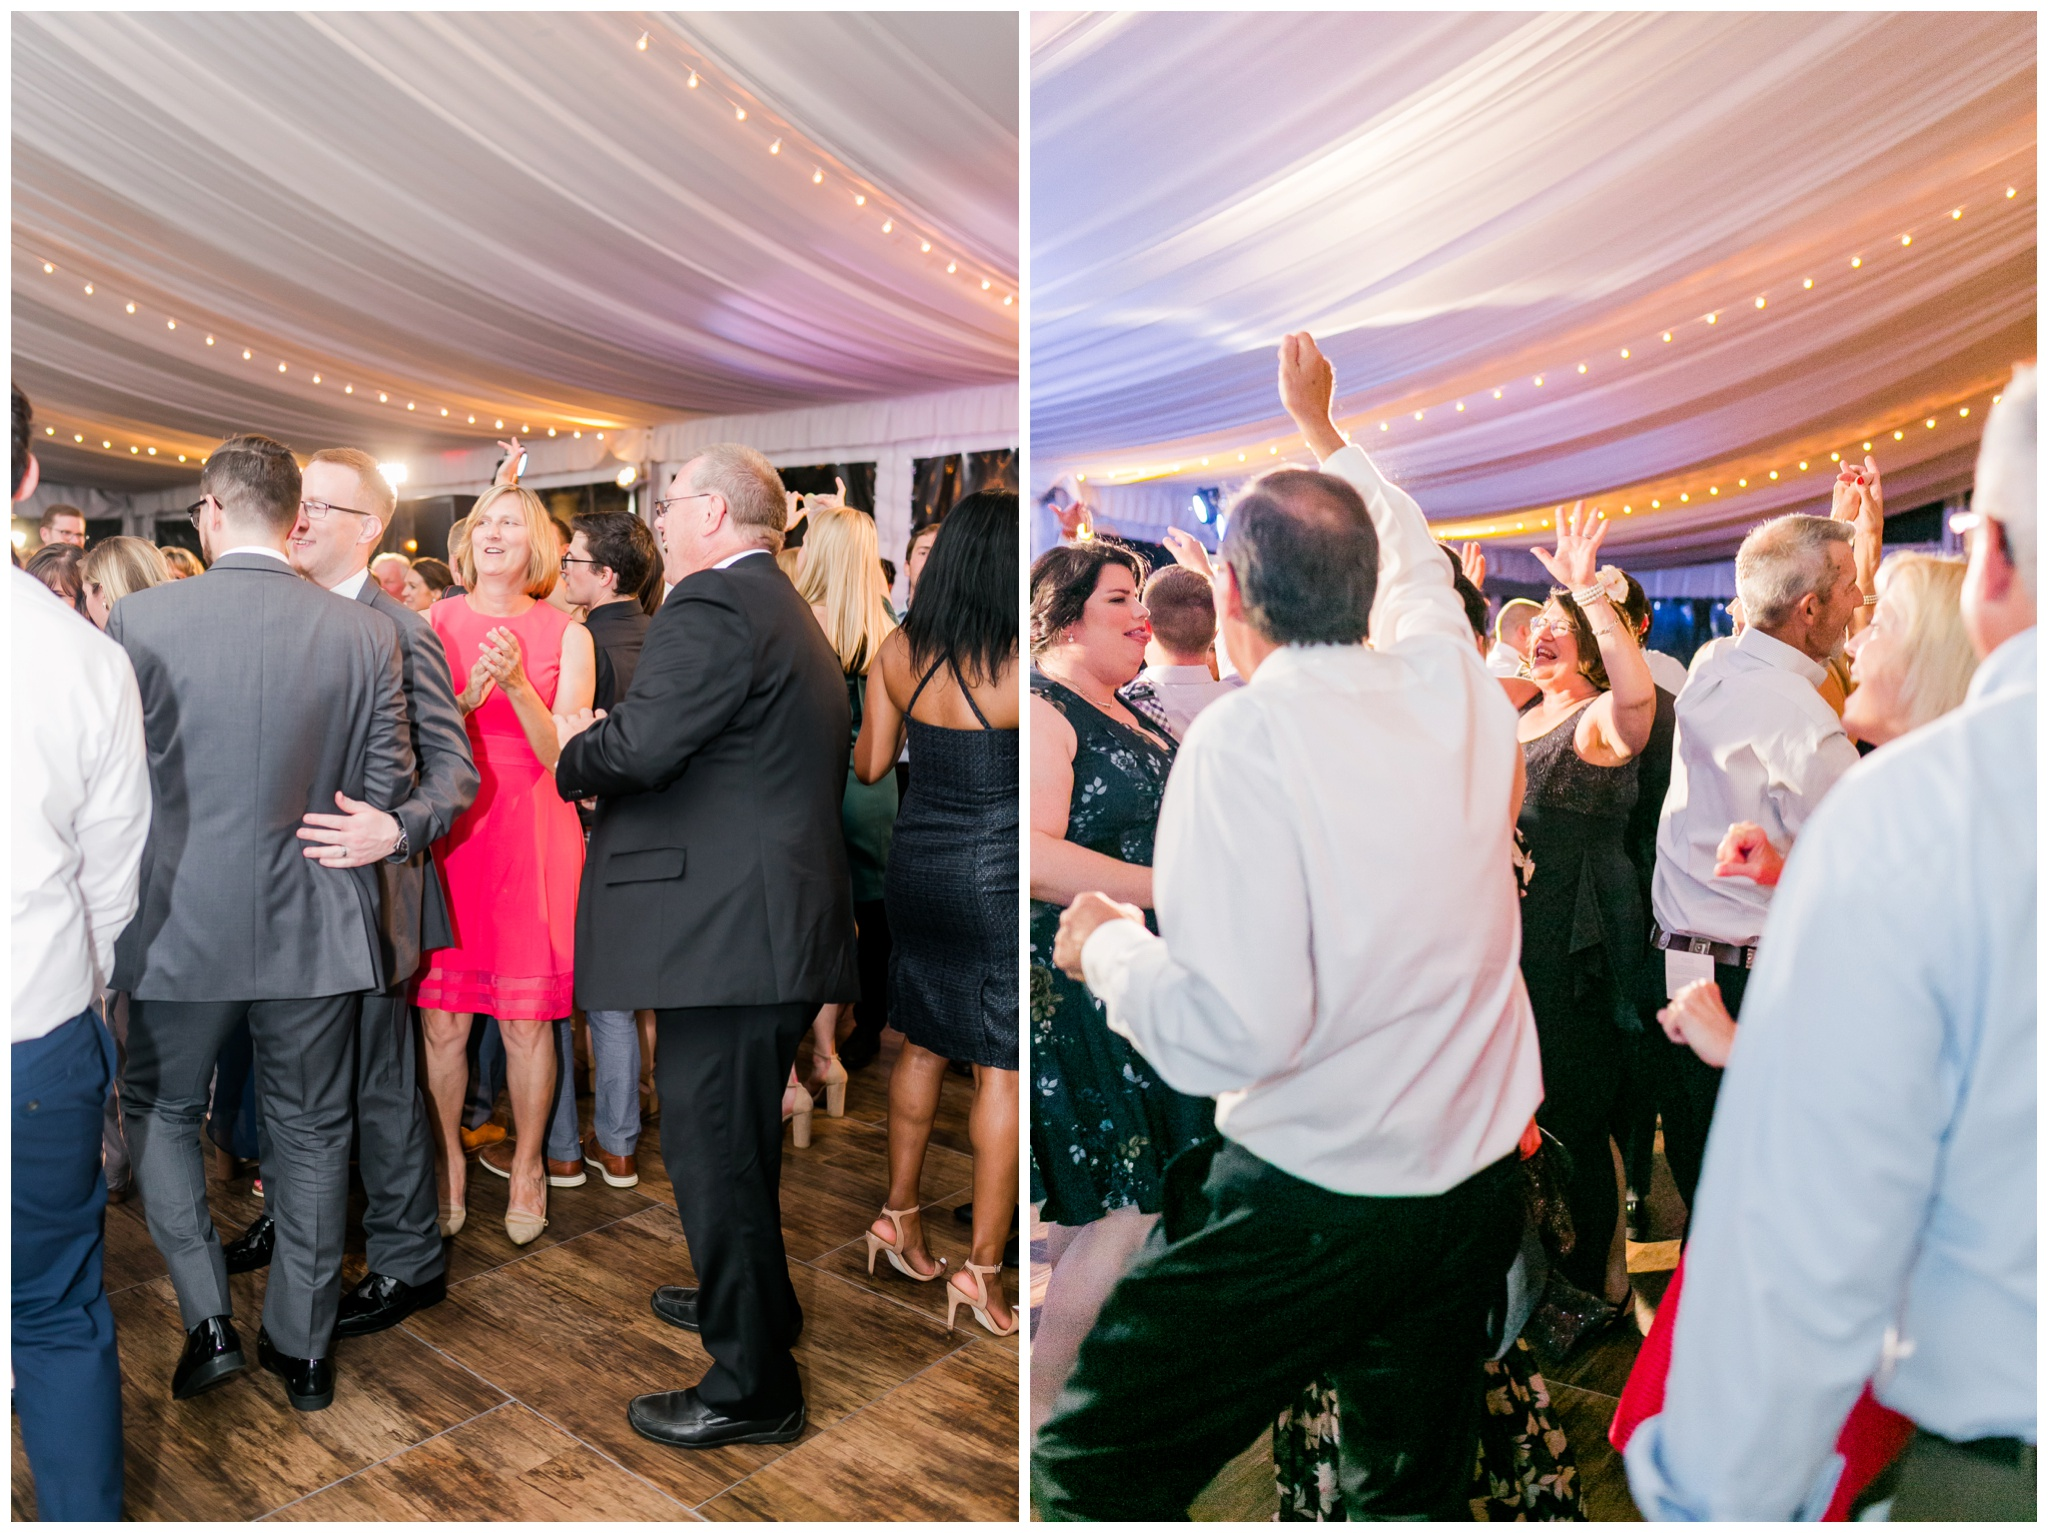 bishops_bay_country_club_wedding_middleton_wisconsin_caynay_photo_4756.jpg